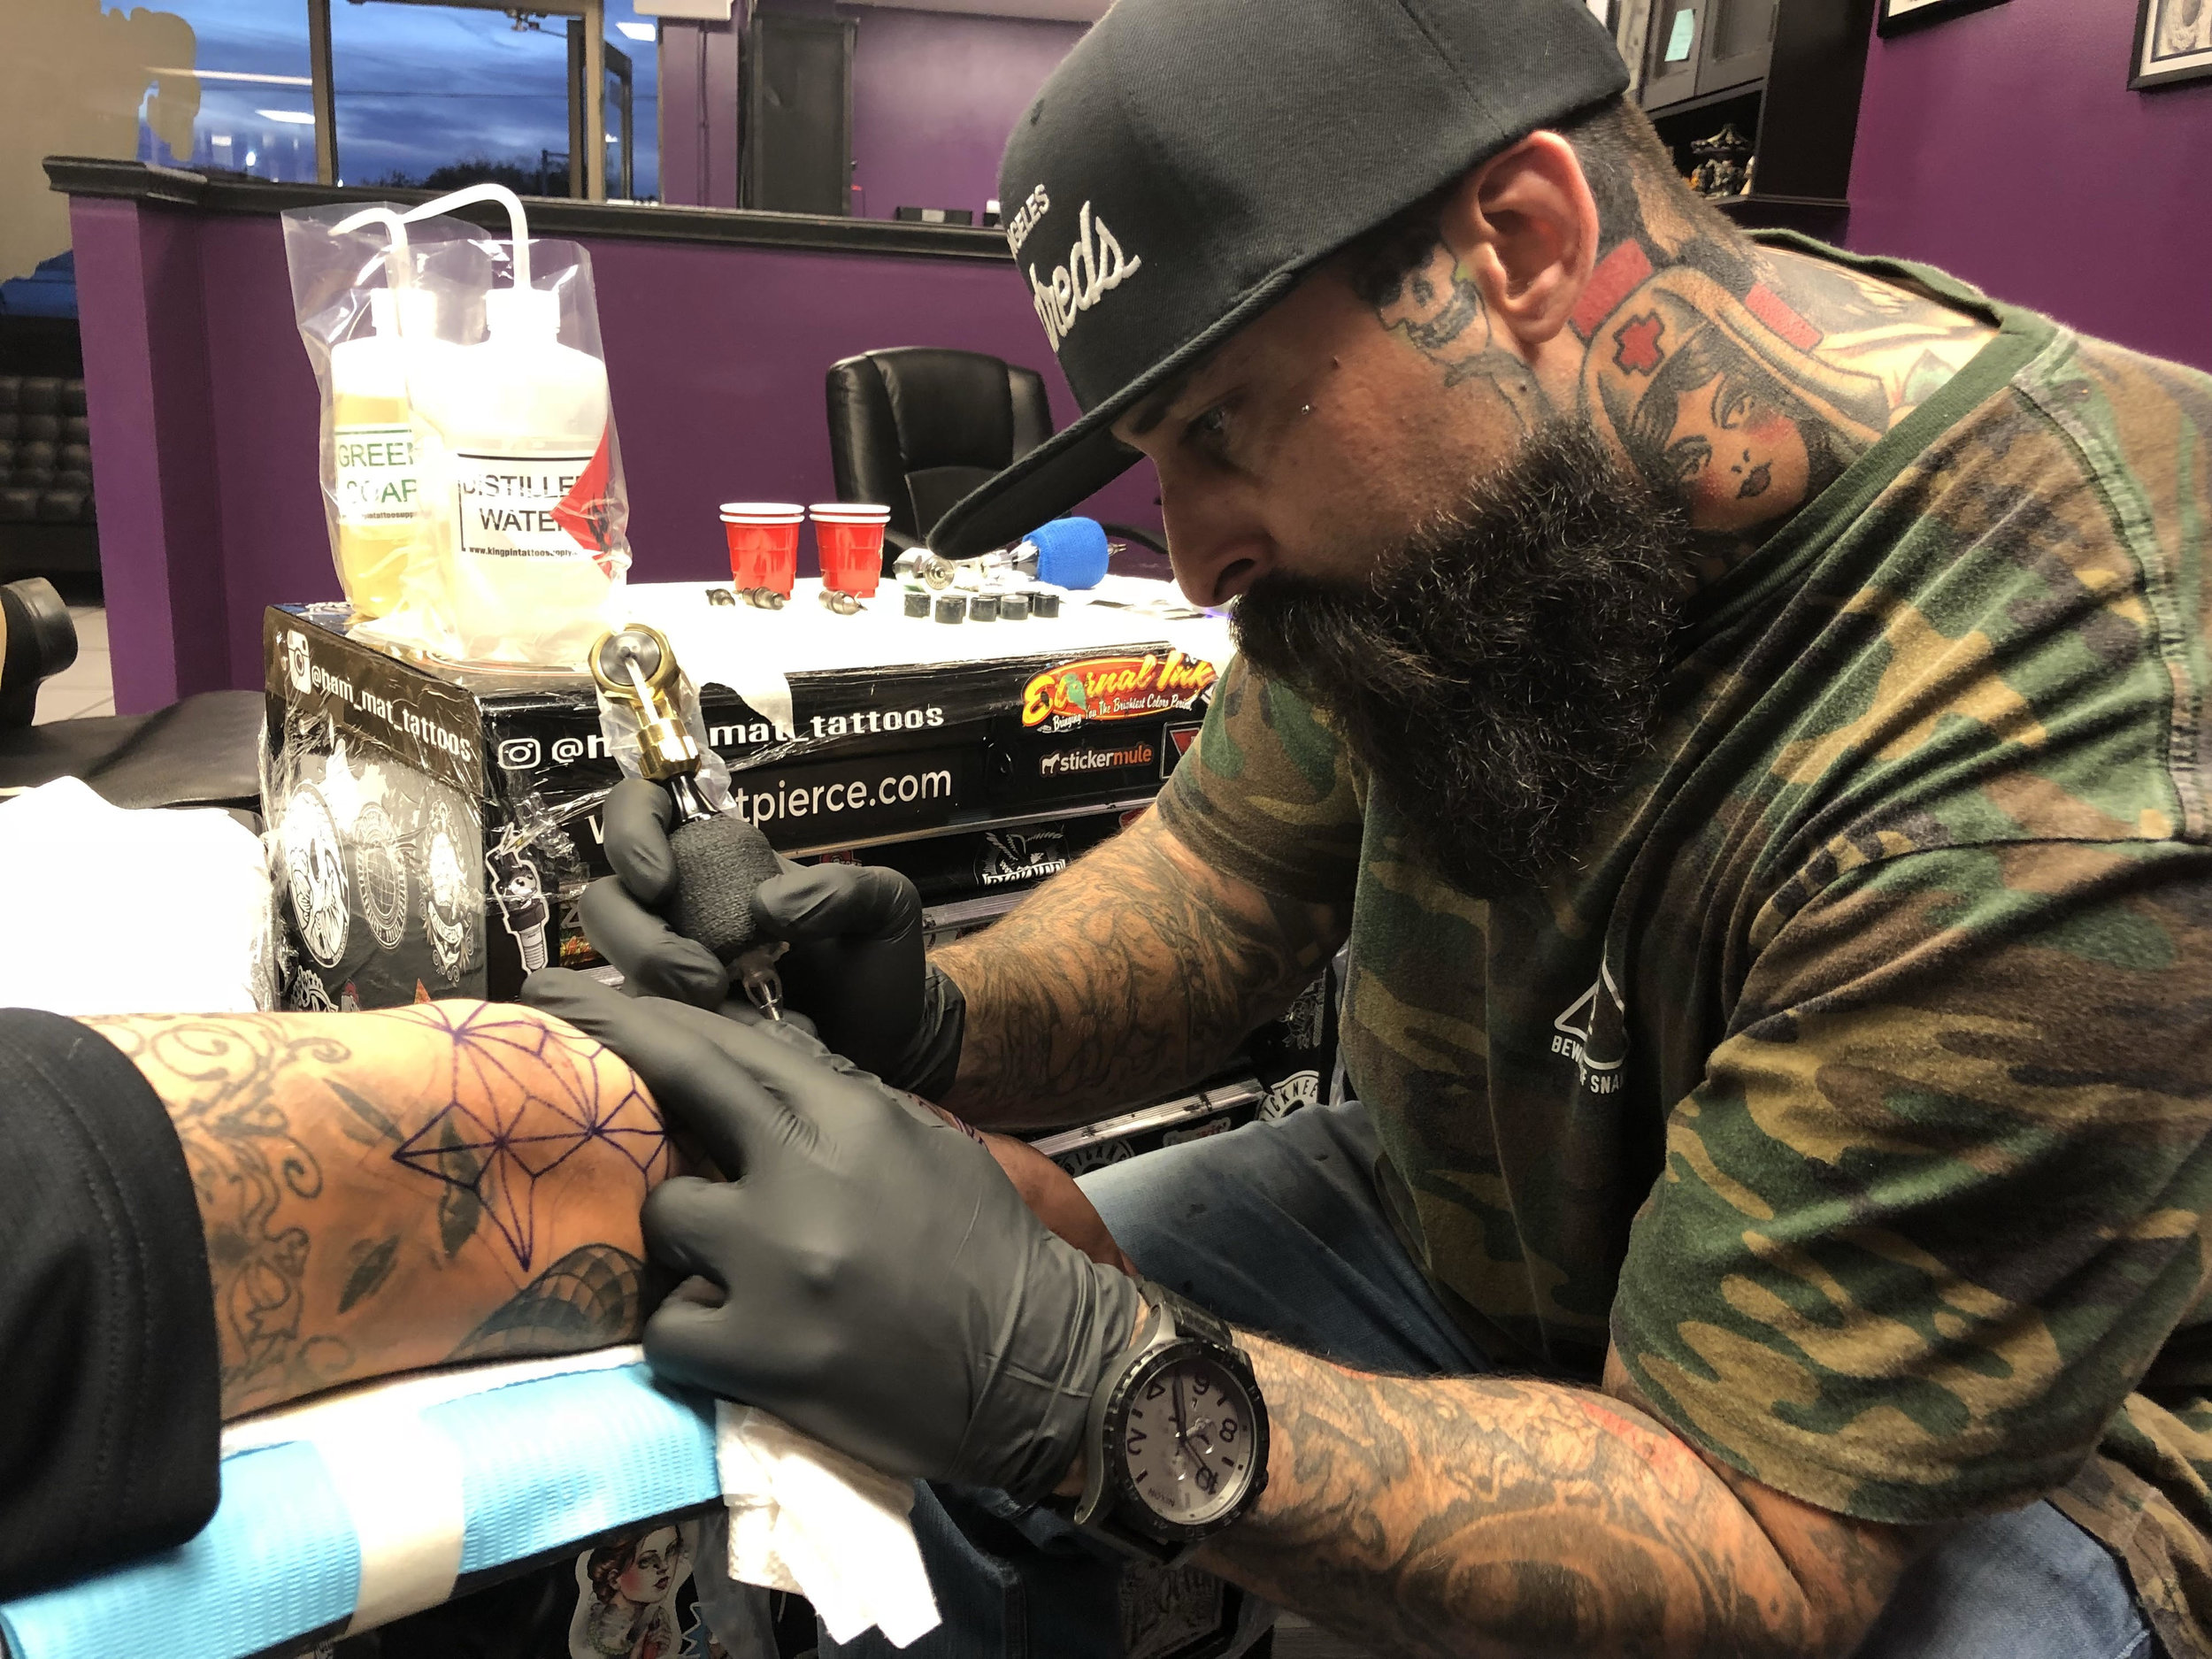 Jake Henry - Jake has been tattooing since 2009. He is the owner of Resurrection Tattoo and Fine Art in North Canton, Ohio. Jake specializes in black and gray as well as color realism. Click his picture to check out his work!